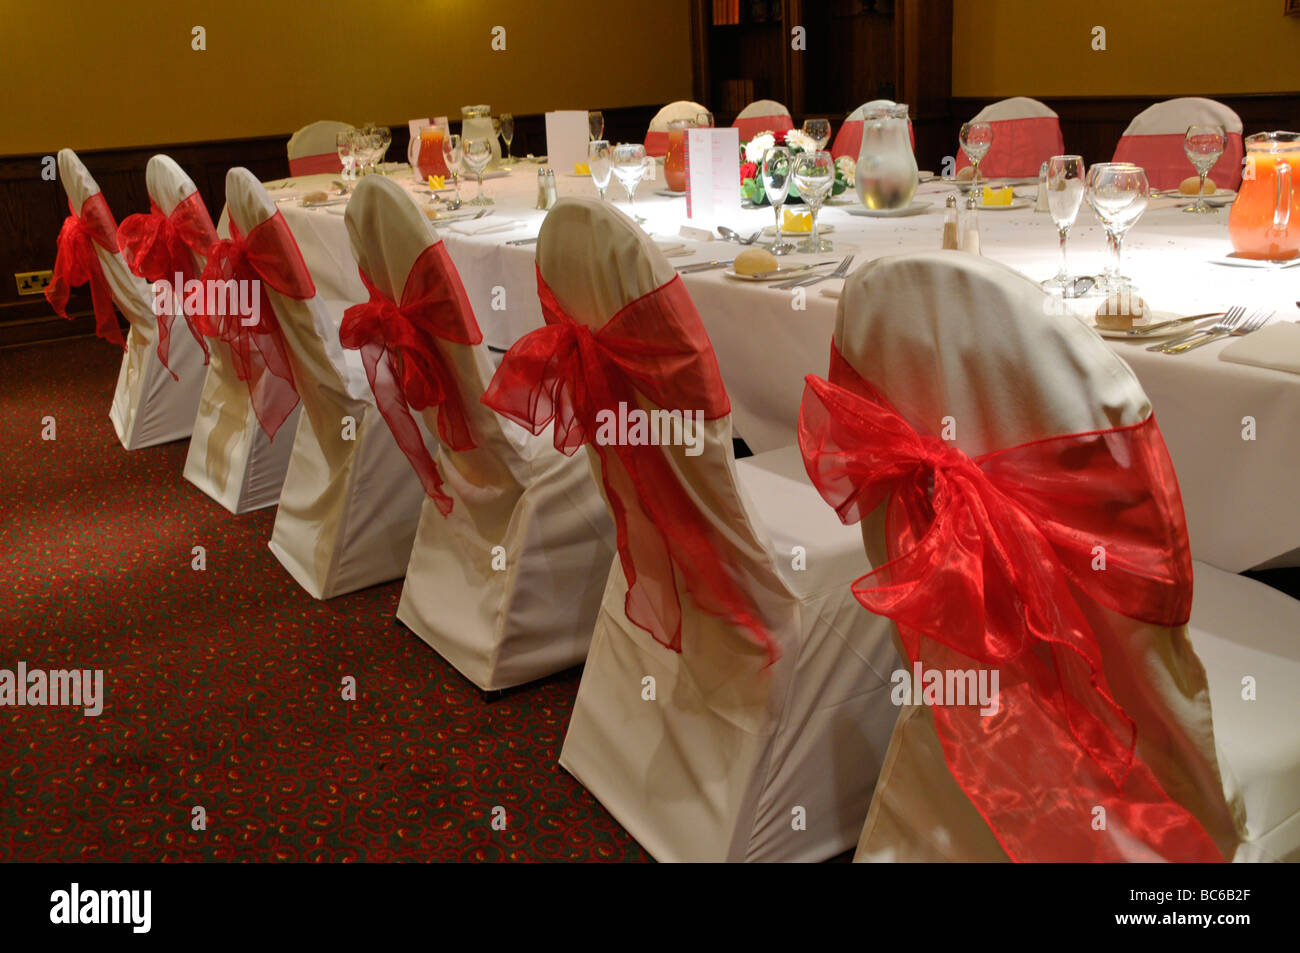 A wedding dining table and chairs. - Stock Image